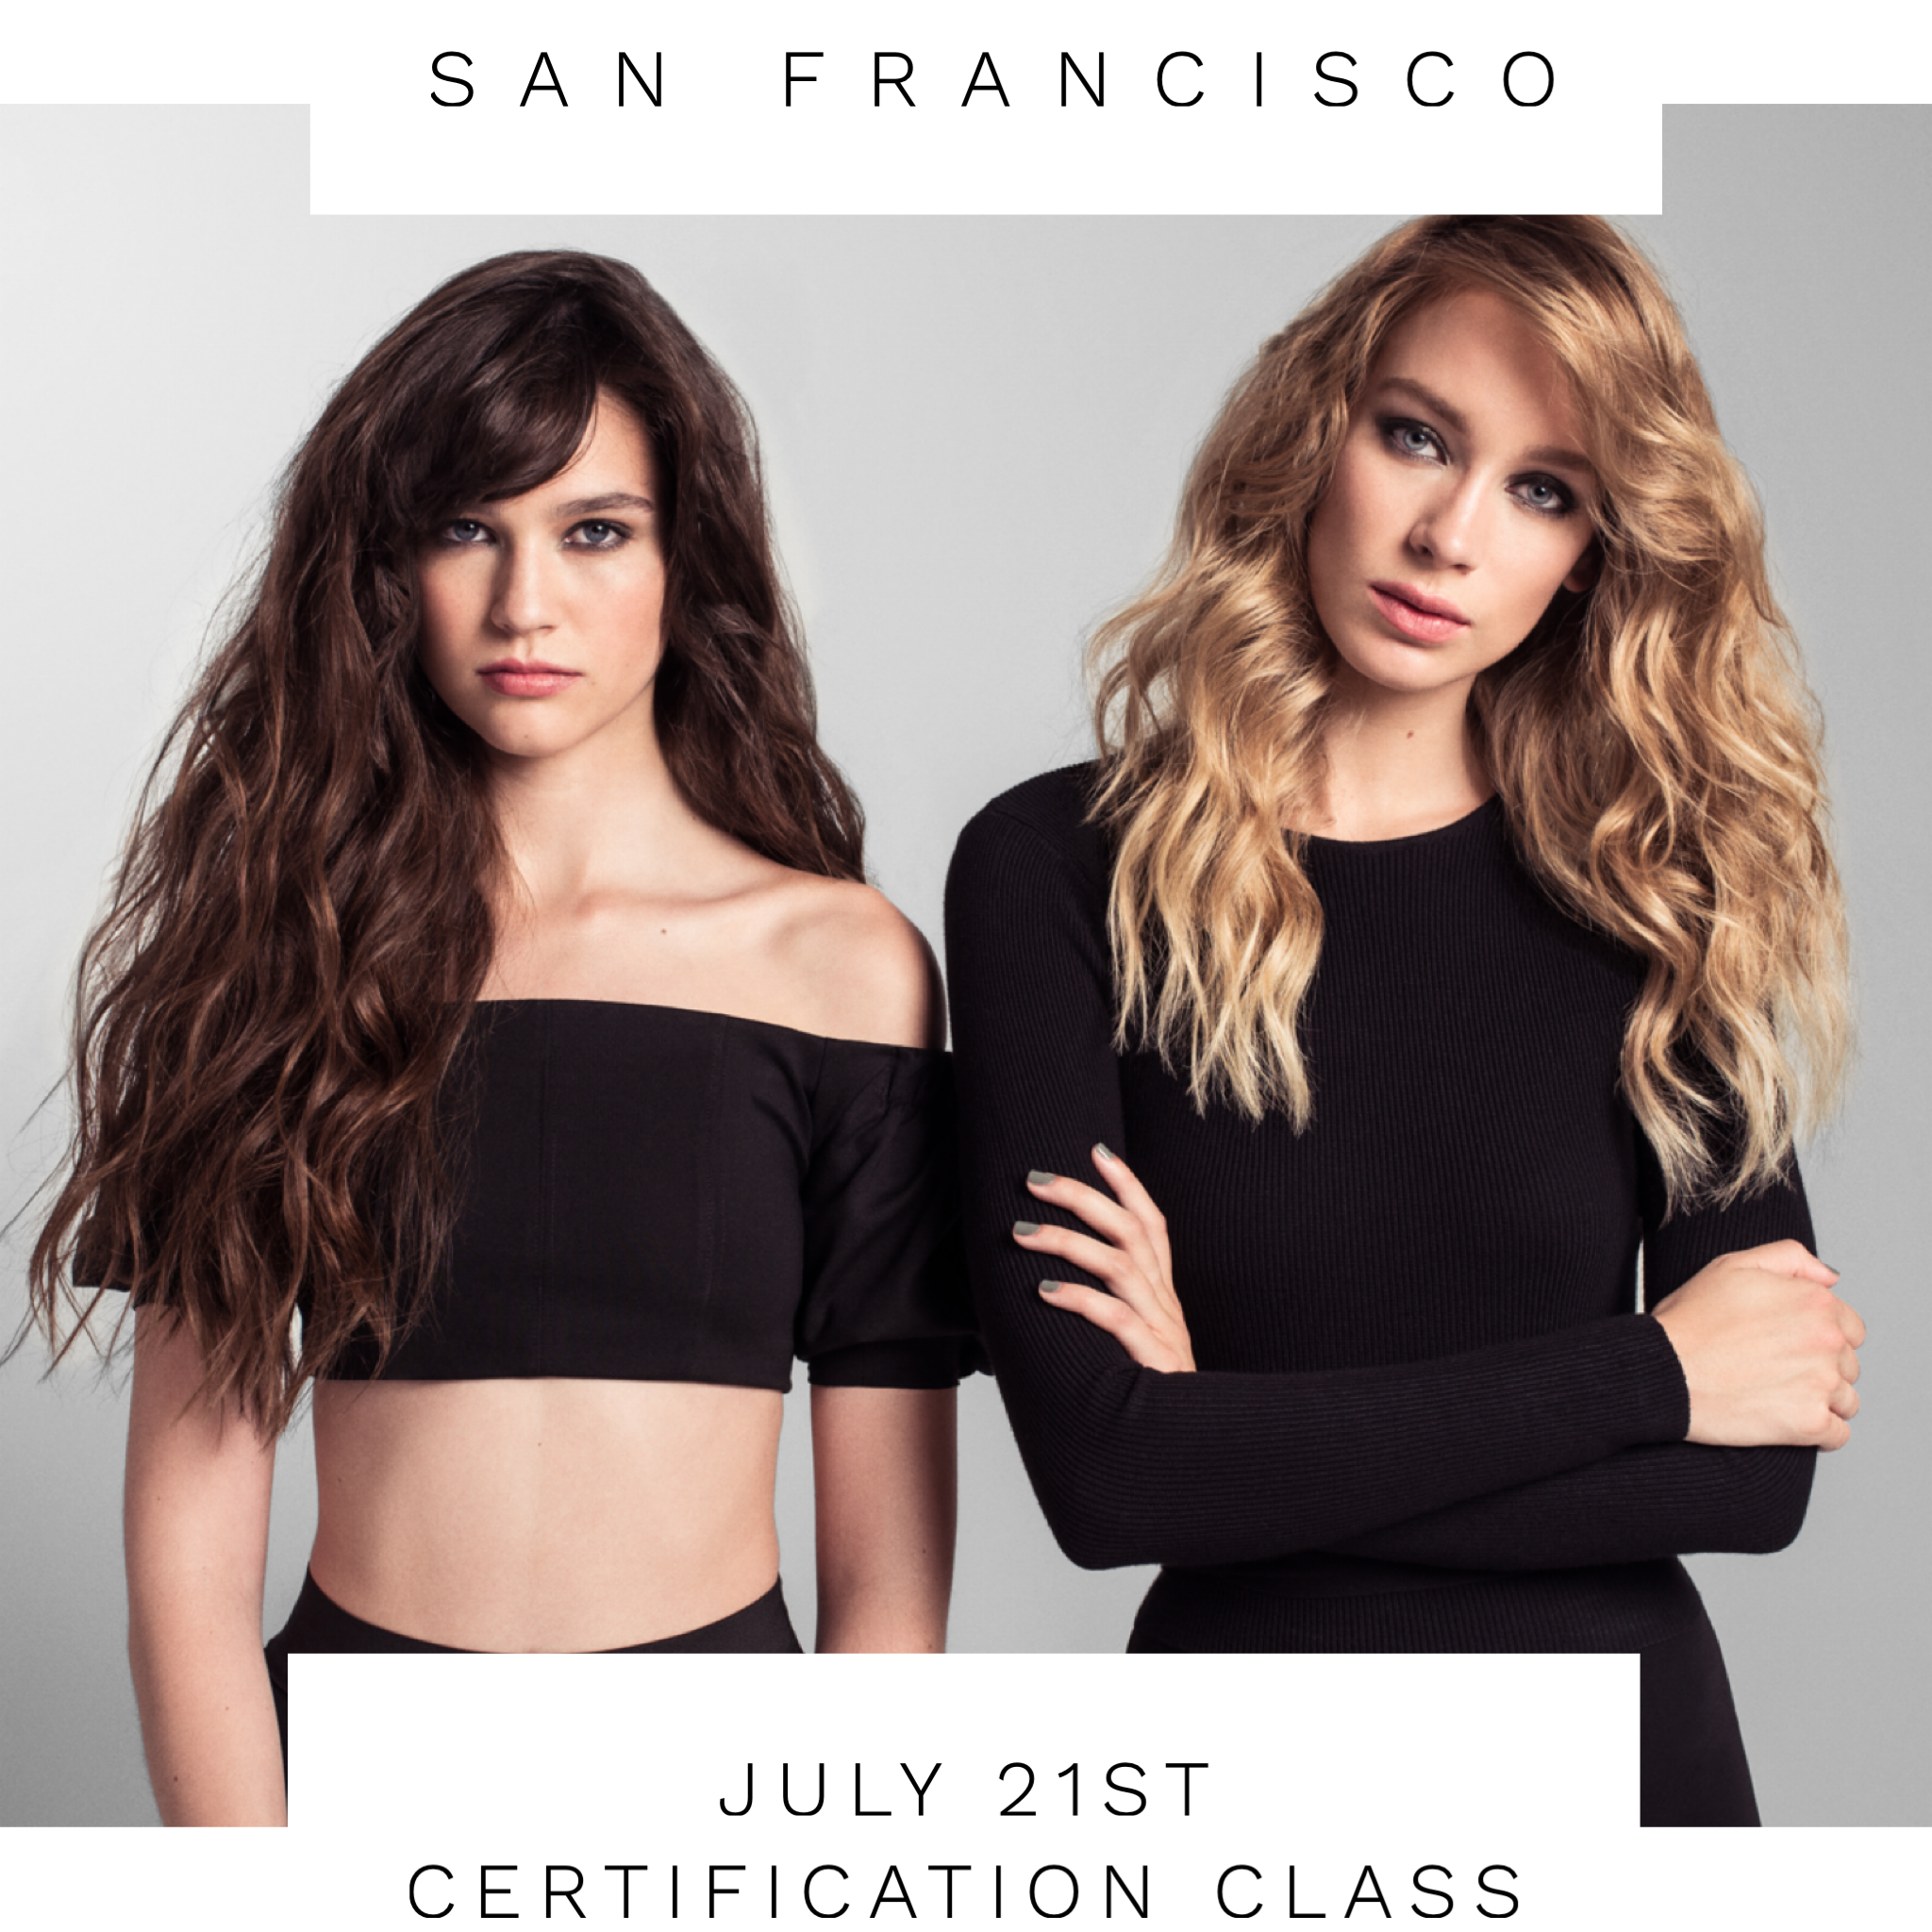 The Certification Class is $300.00 and includes  Tools  Practice hair  Hands-on application  One on one instruction  H.S.V.- HOW to SELL VOËL - selling tips and how your client will save money while you make money.  The class is three hours and  model not required for the class . We have limited space available, so we encourage a deposit of $200 to hold your space and the remainder due on June 23rd.  Location tbd closer to date  Please contact For more info contact Kimberly  info@voelhair.com